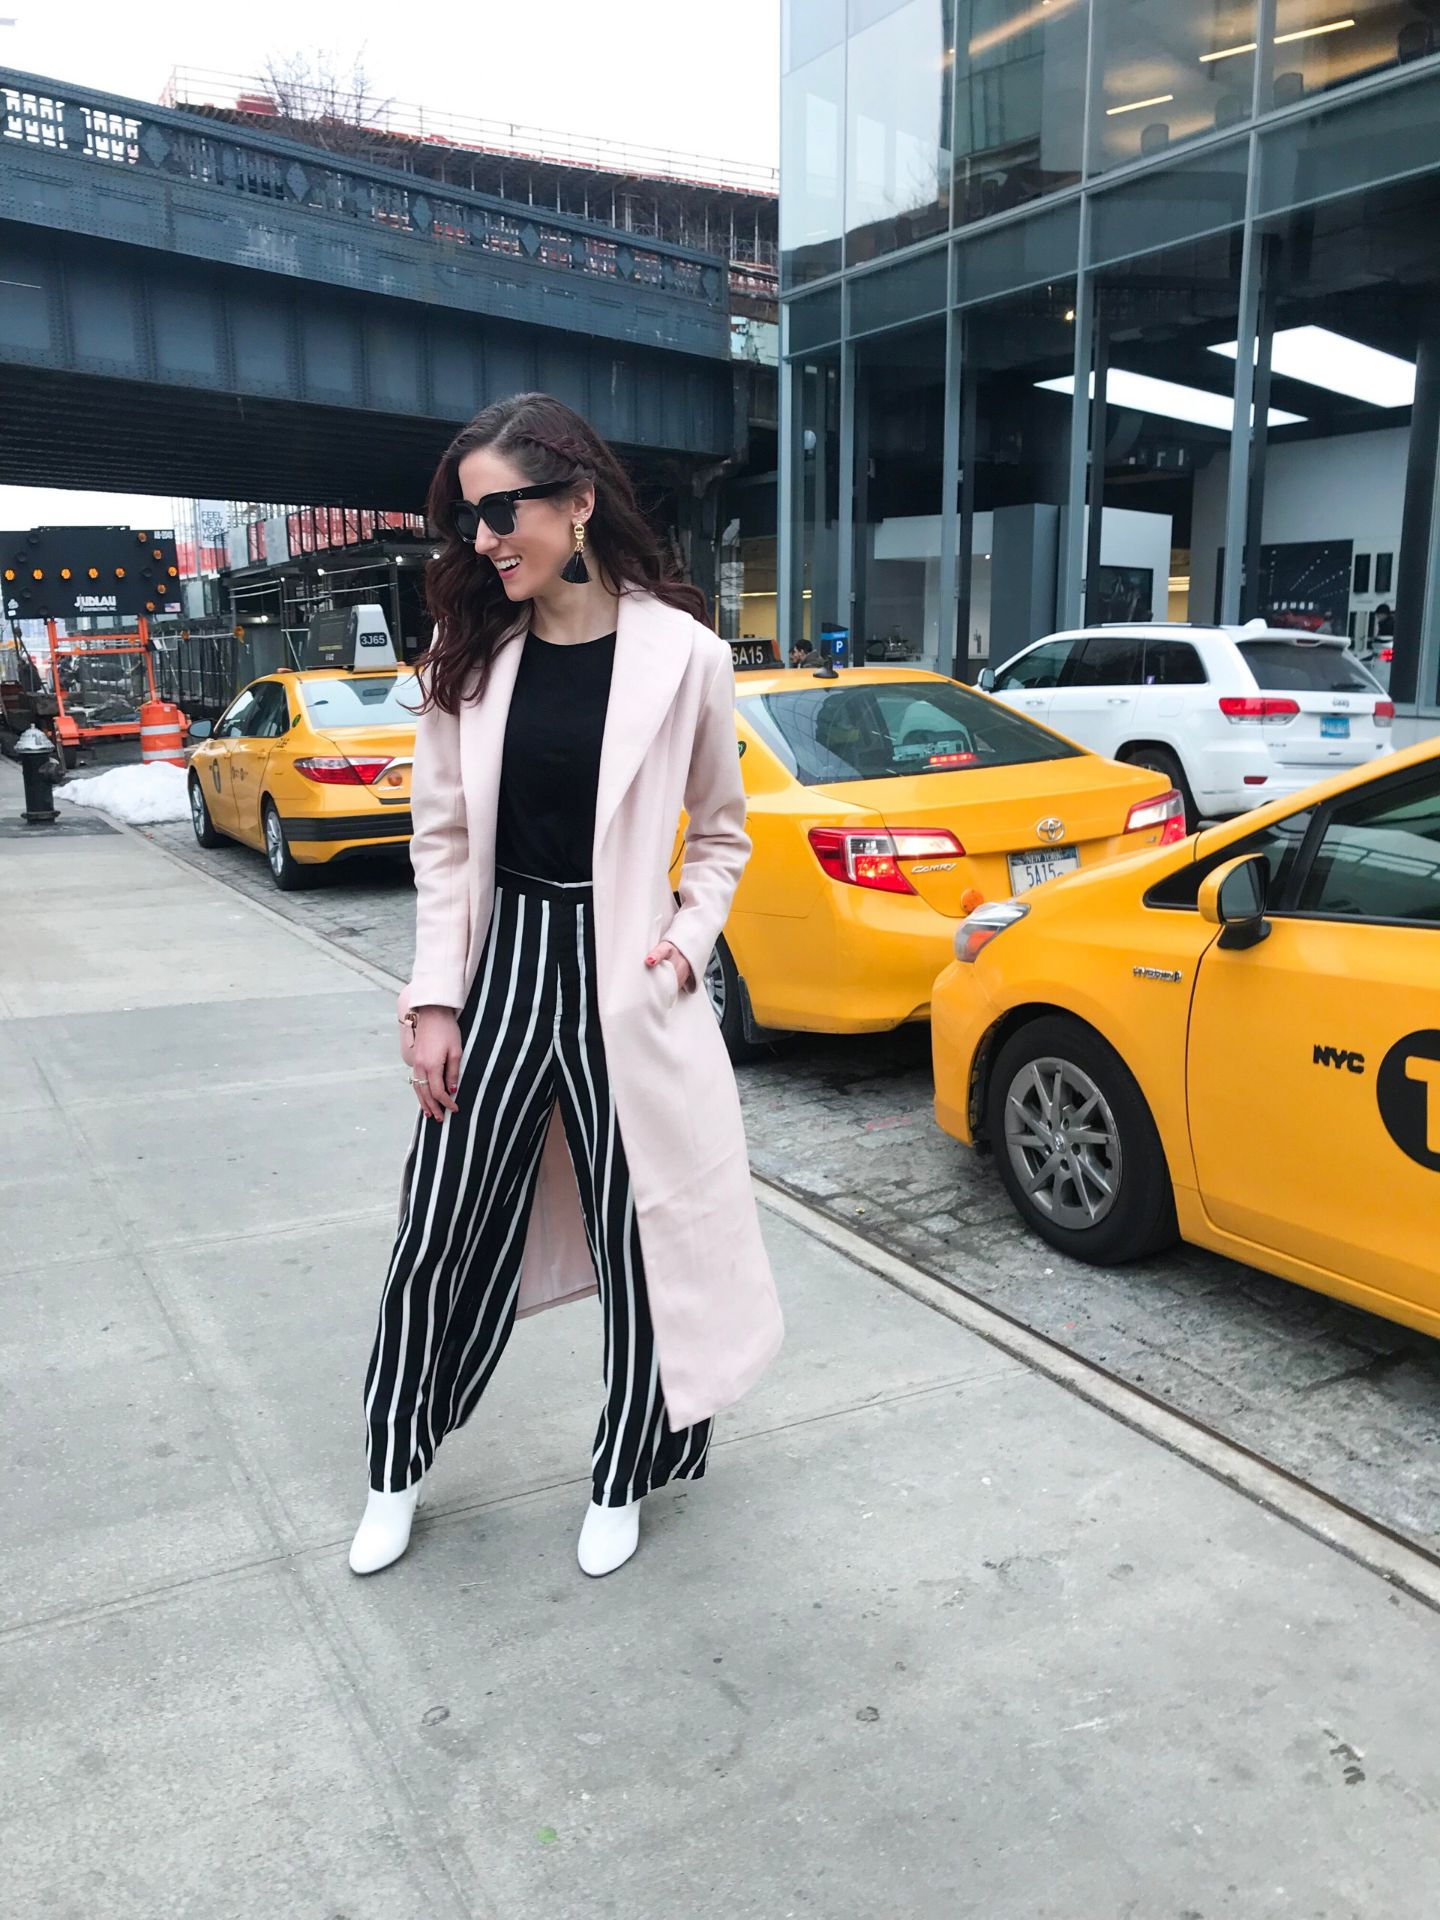 How to attend New York Fashion Week Shows - NYFW 101 by popular Philadelphia fashion blogger Coming Up Roses